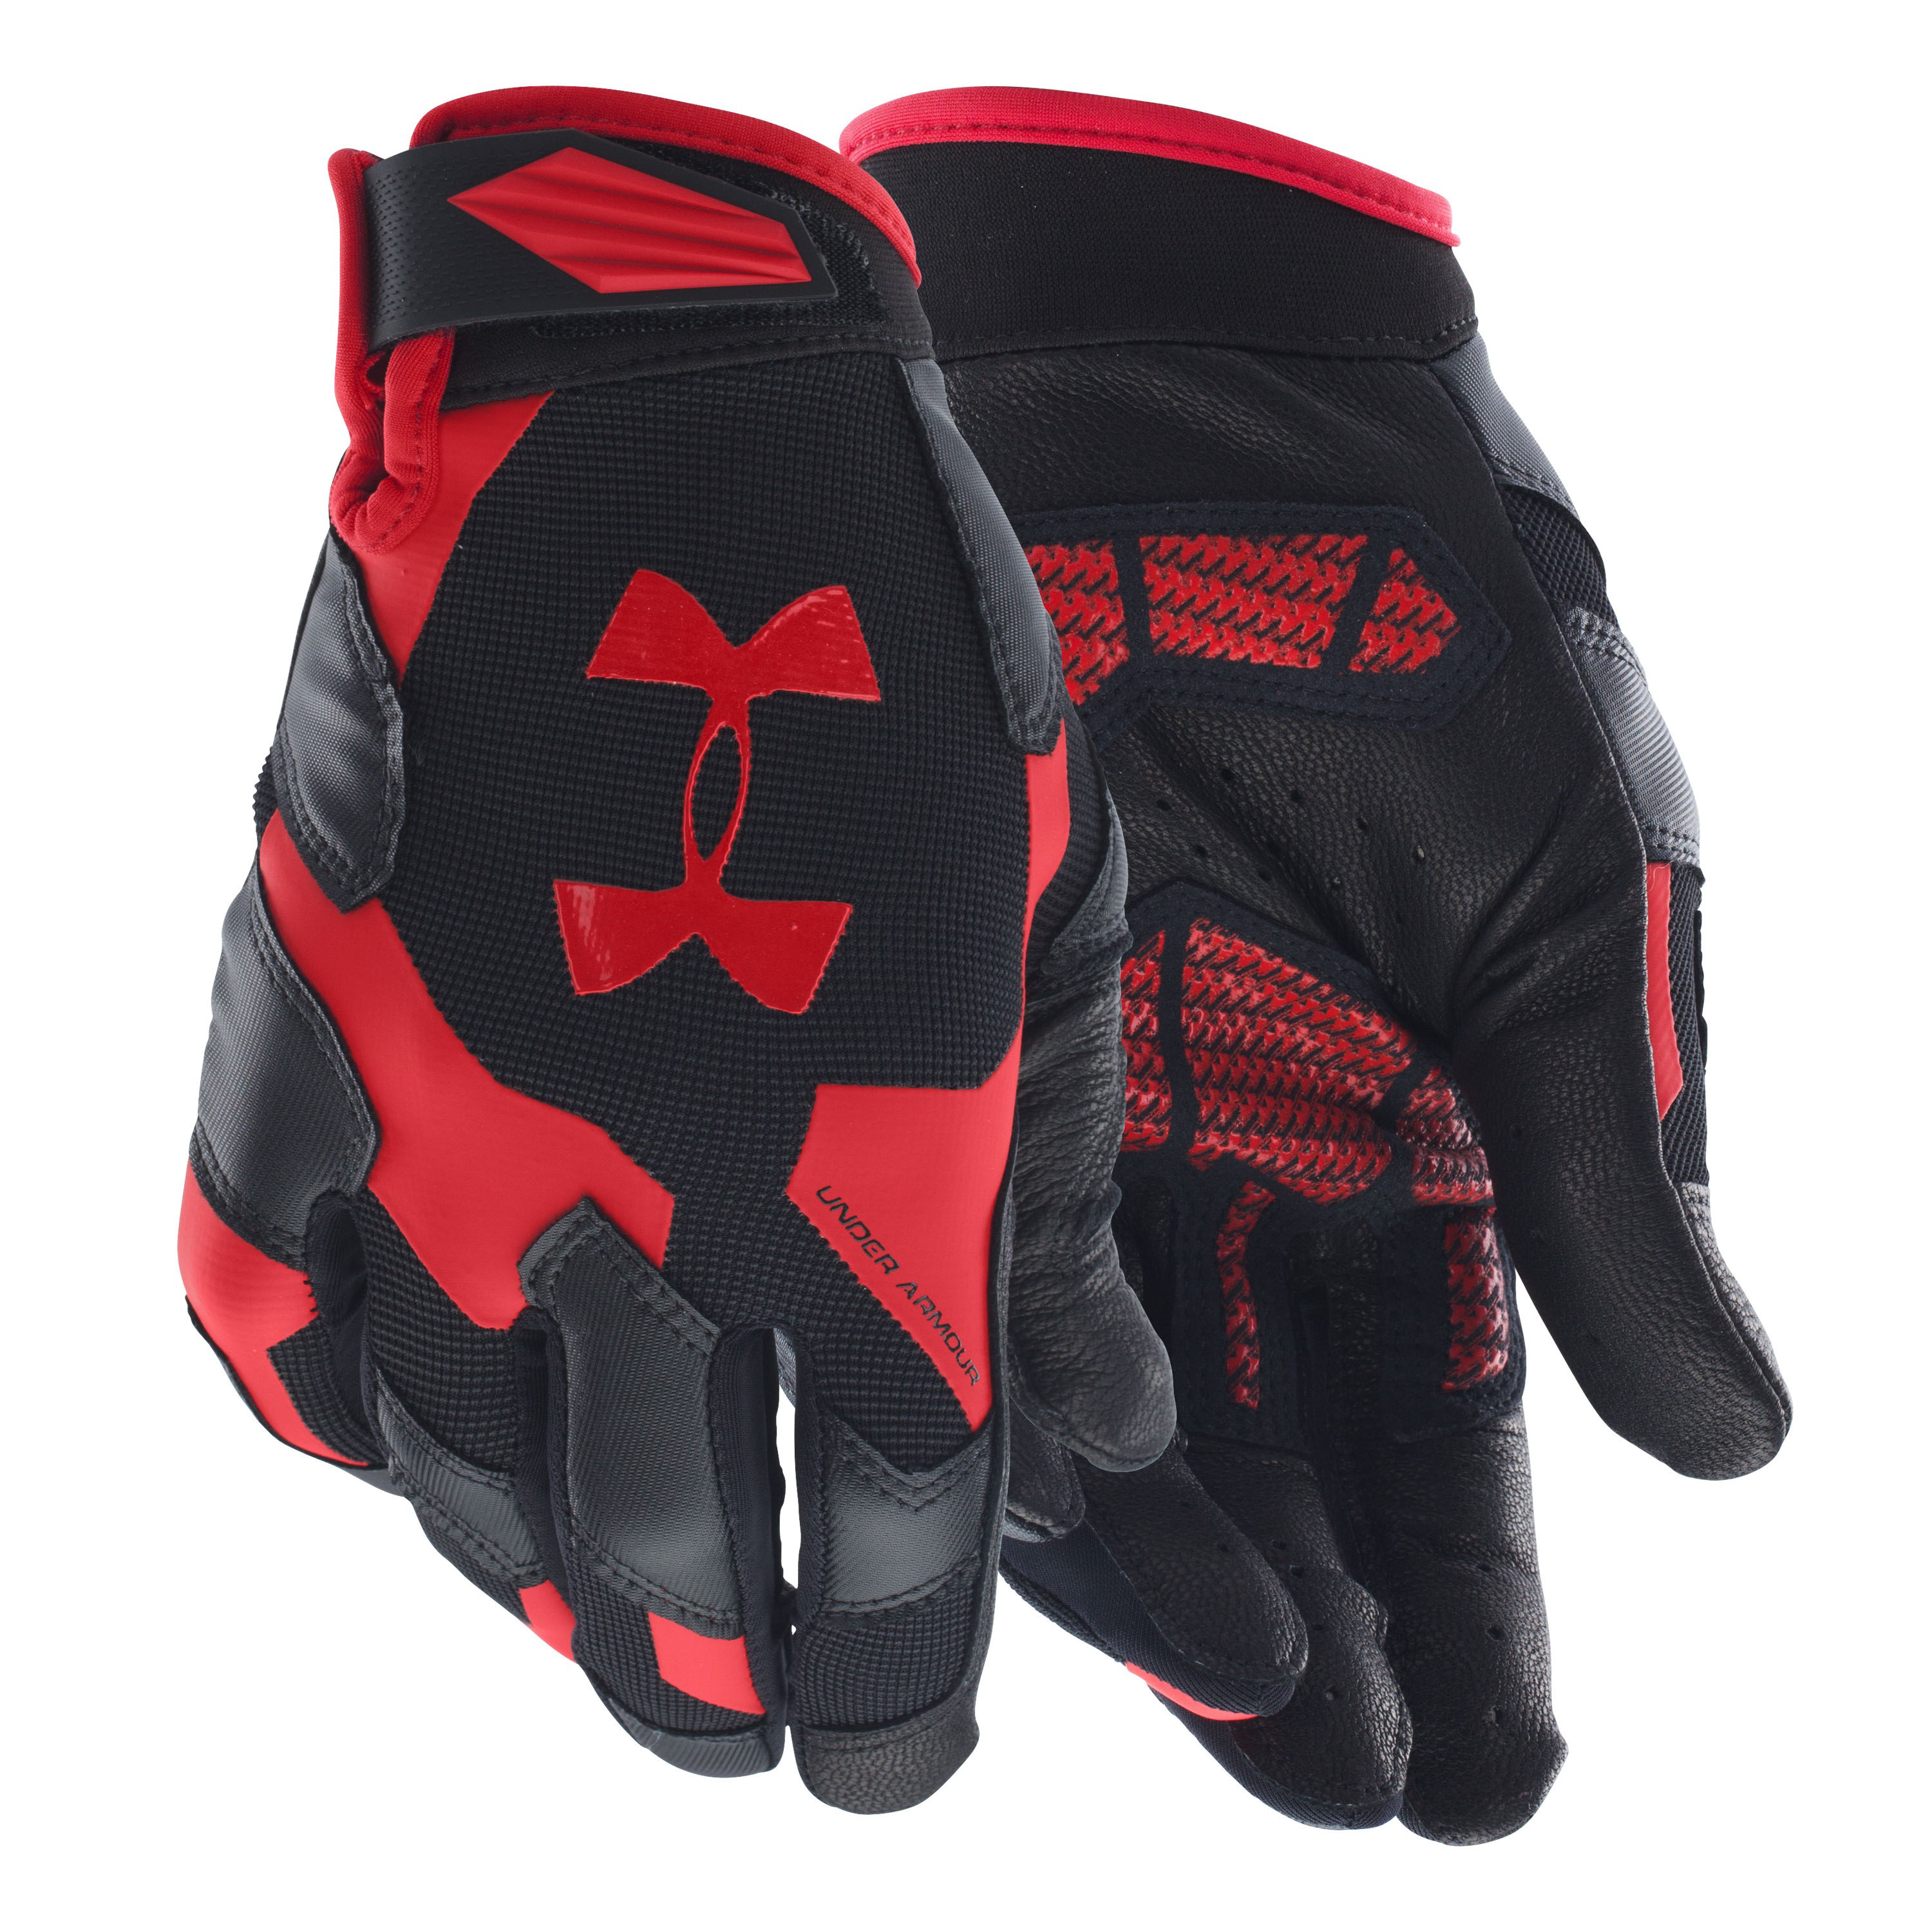 Under Armour Gloves Renegade black/red